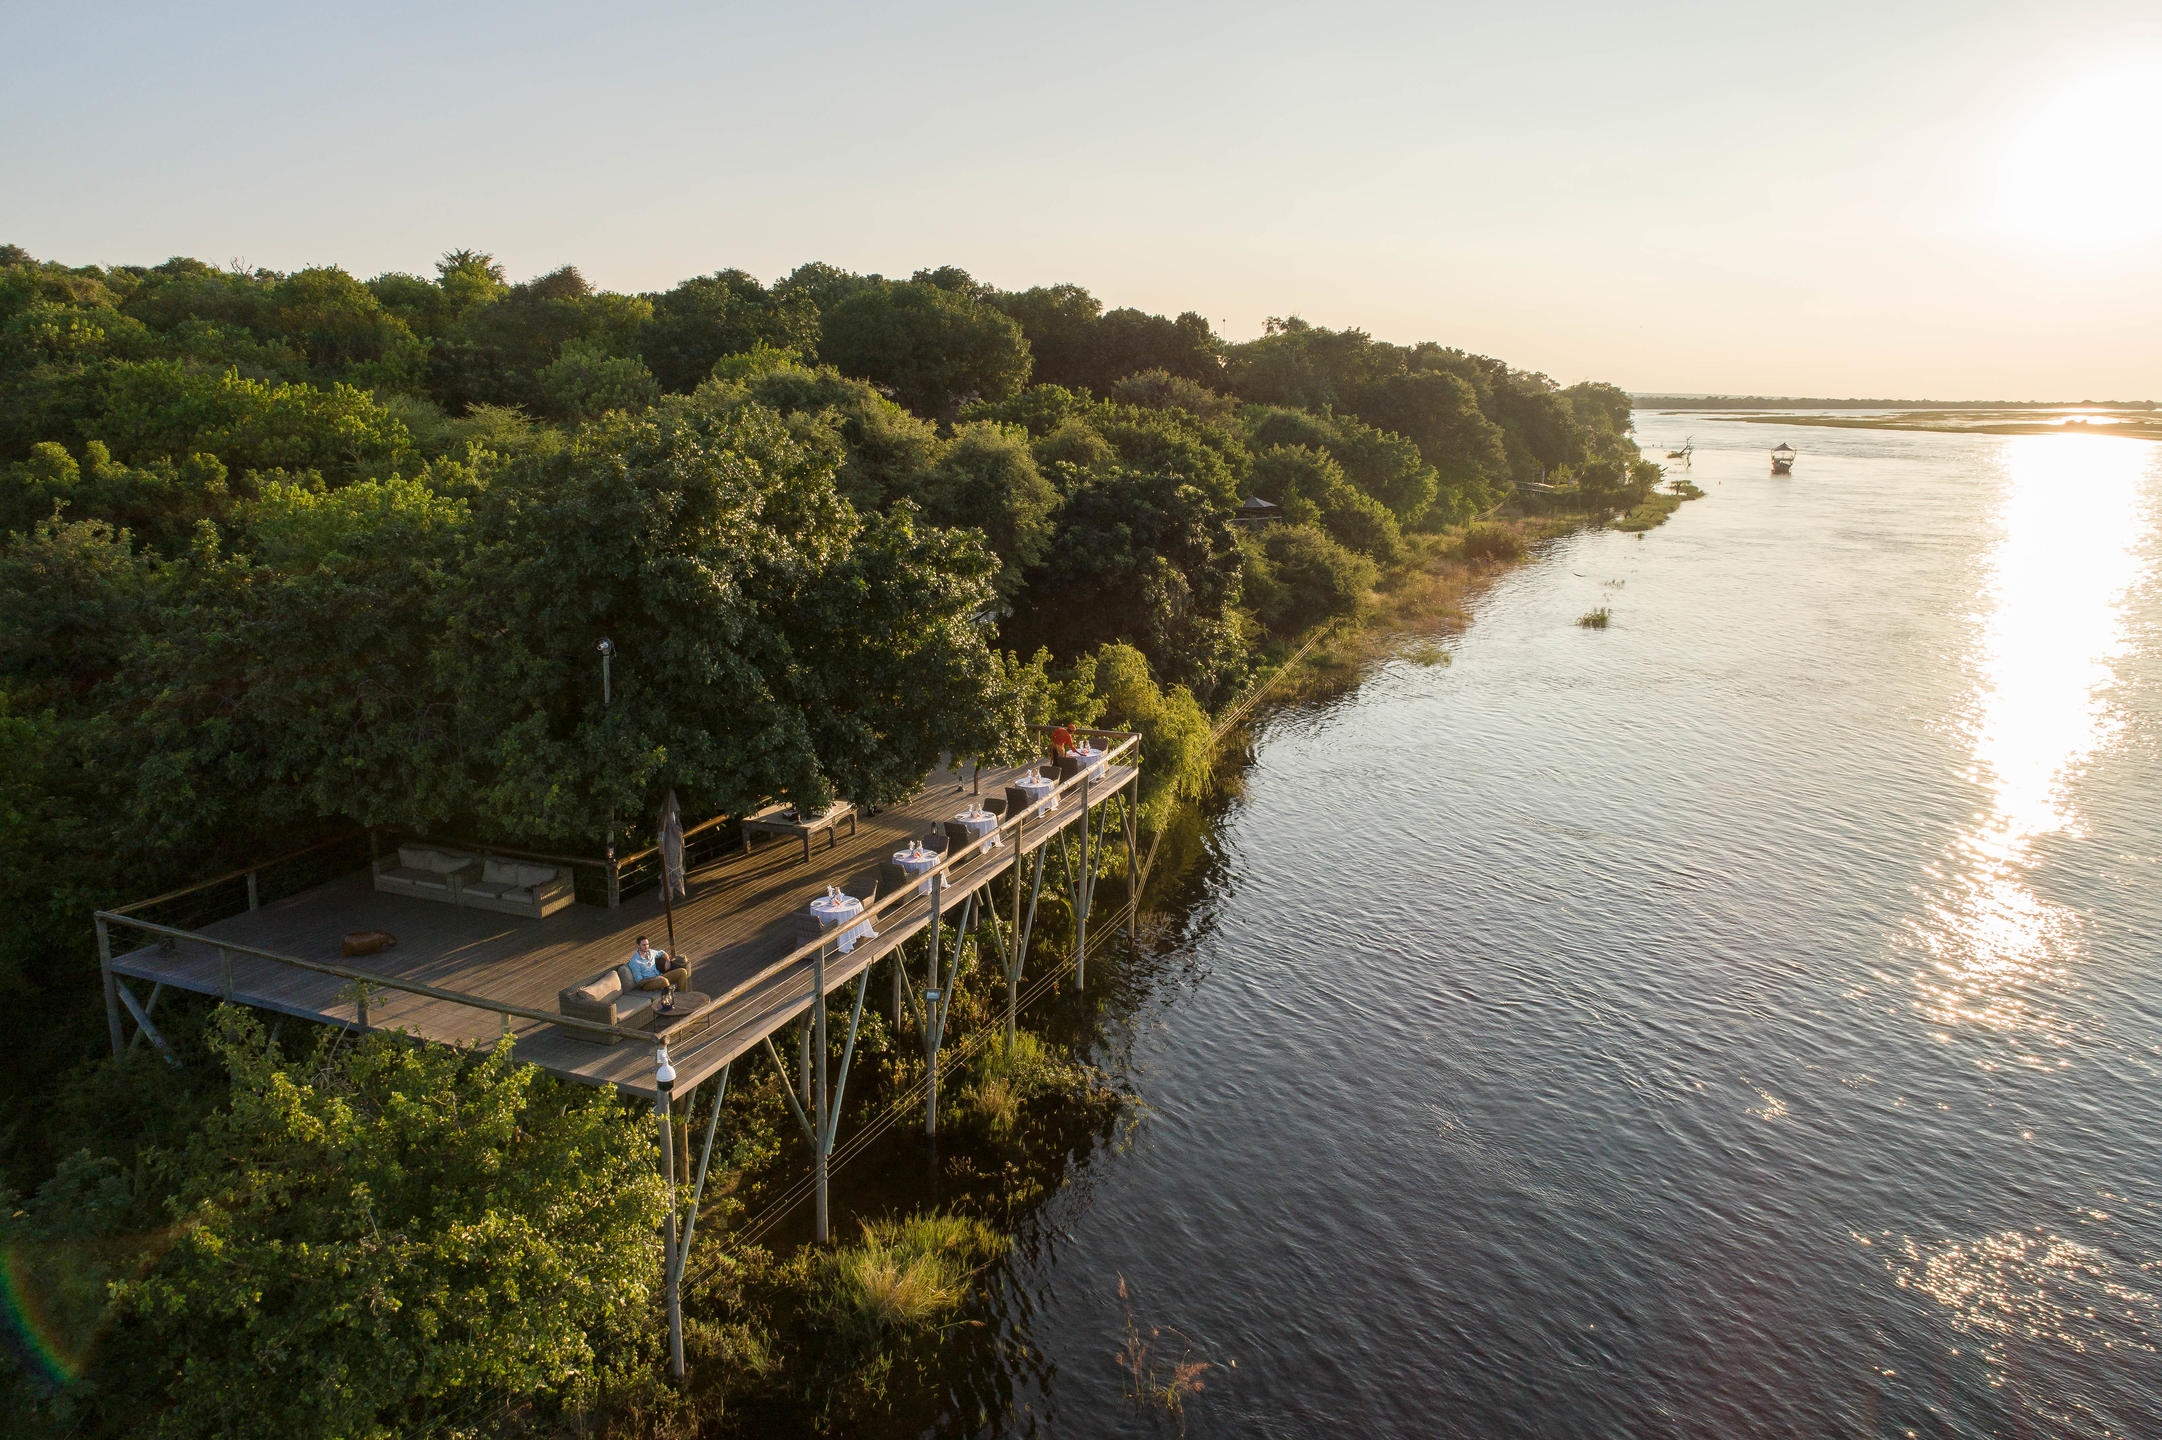 Fall in love with Chobe Game Lodge